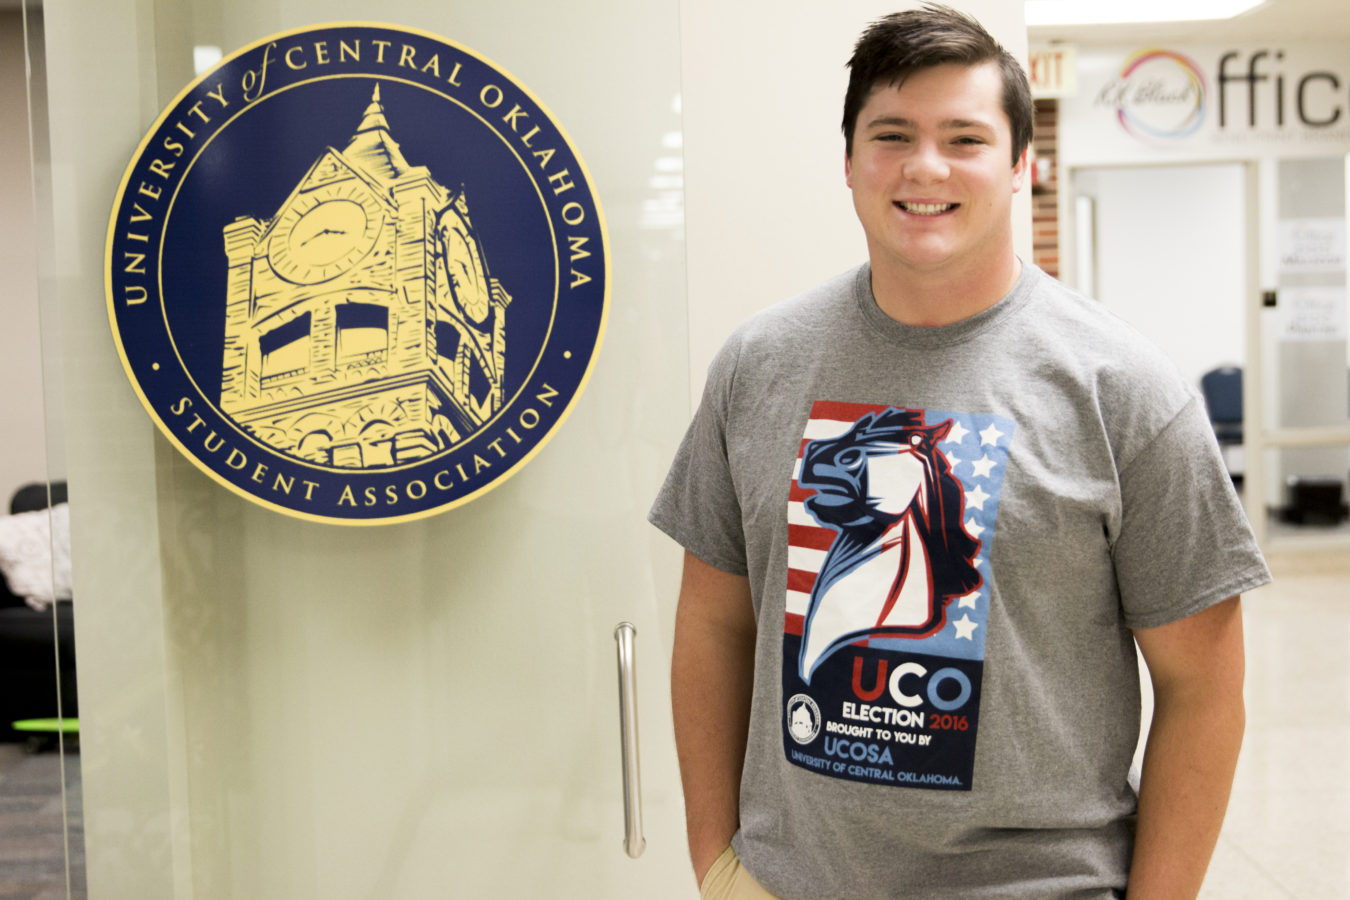 UCOSA Gives Free T-shirts to Student Voters